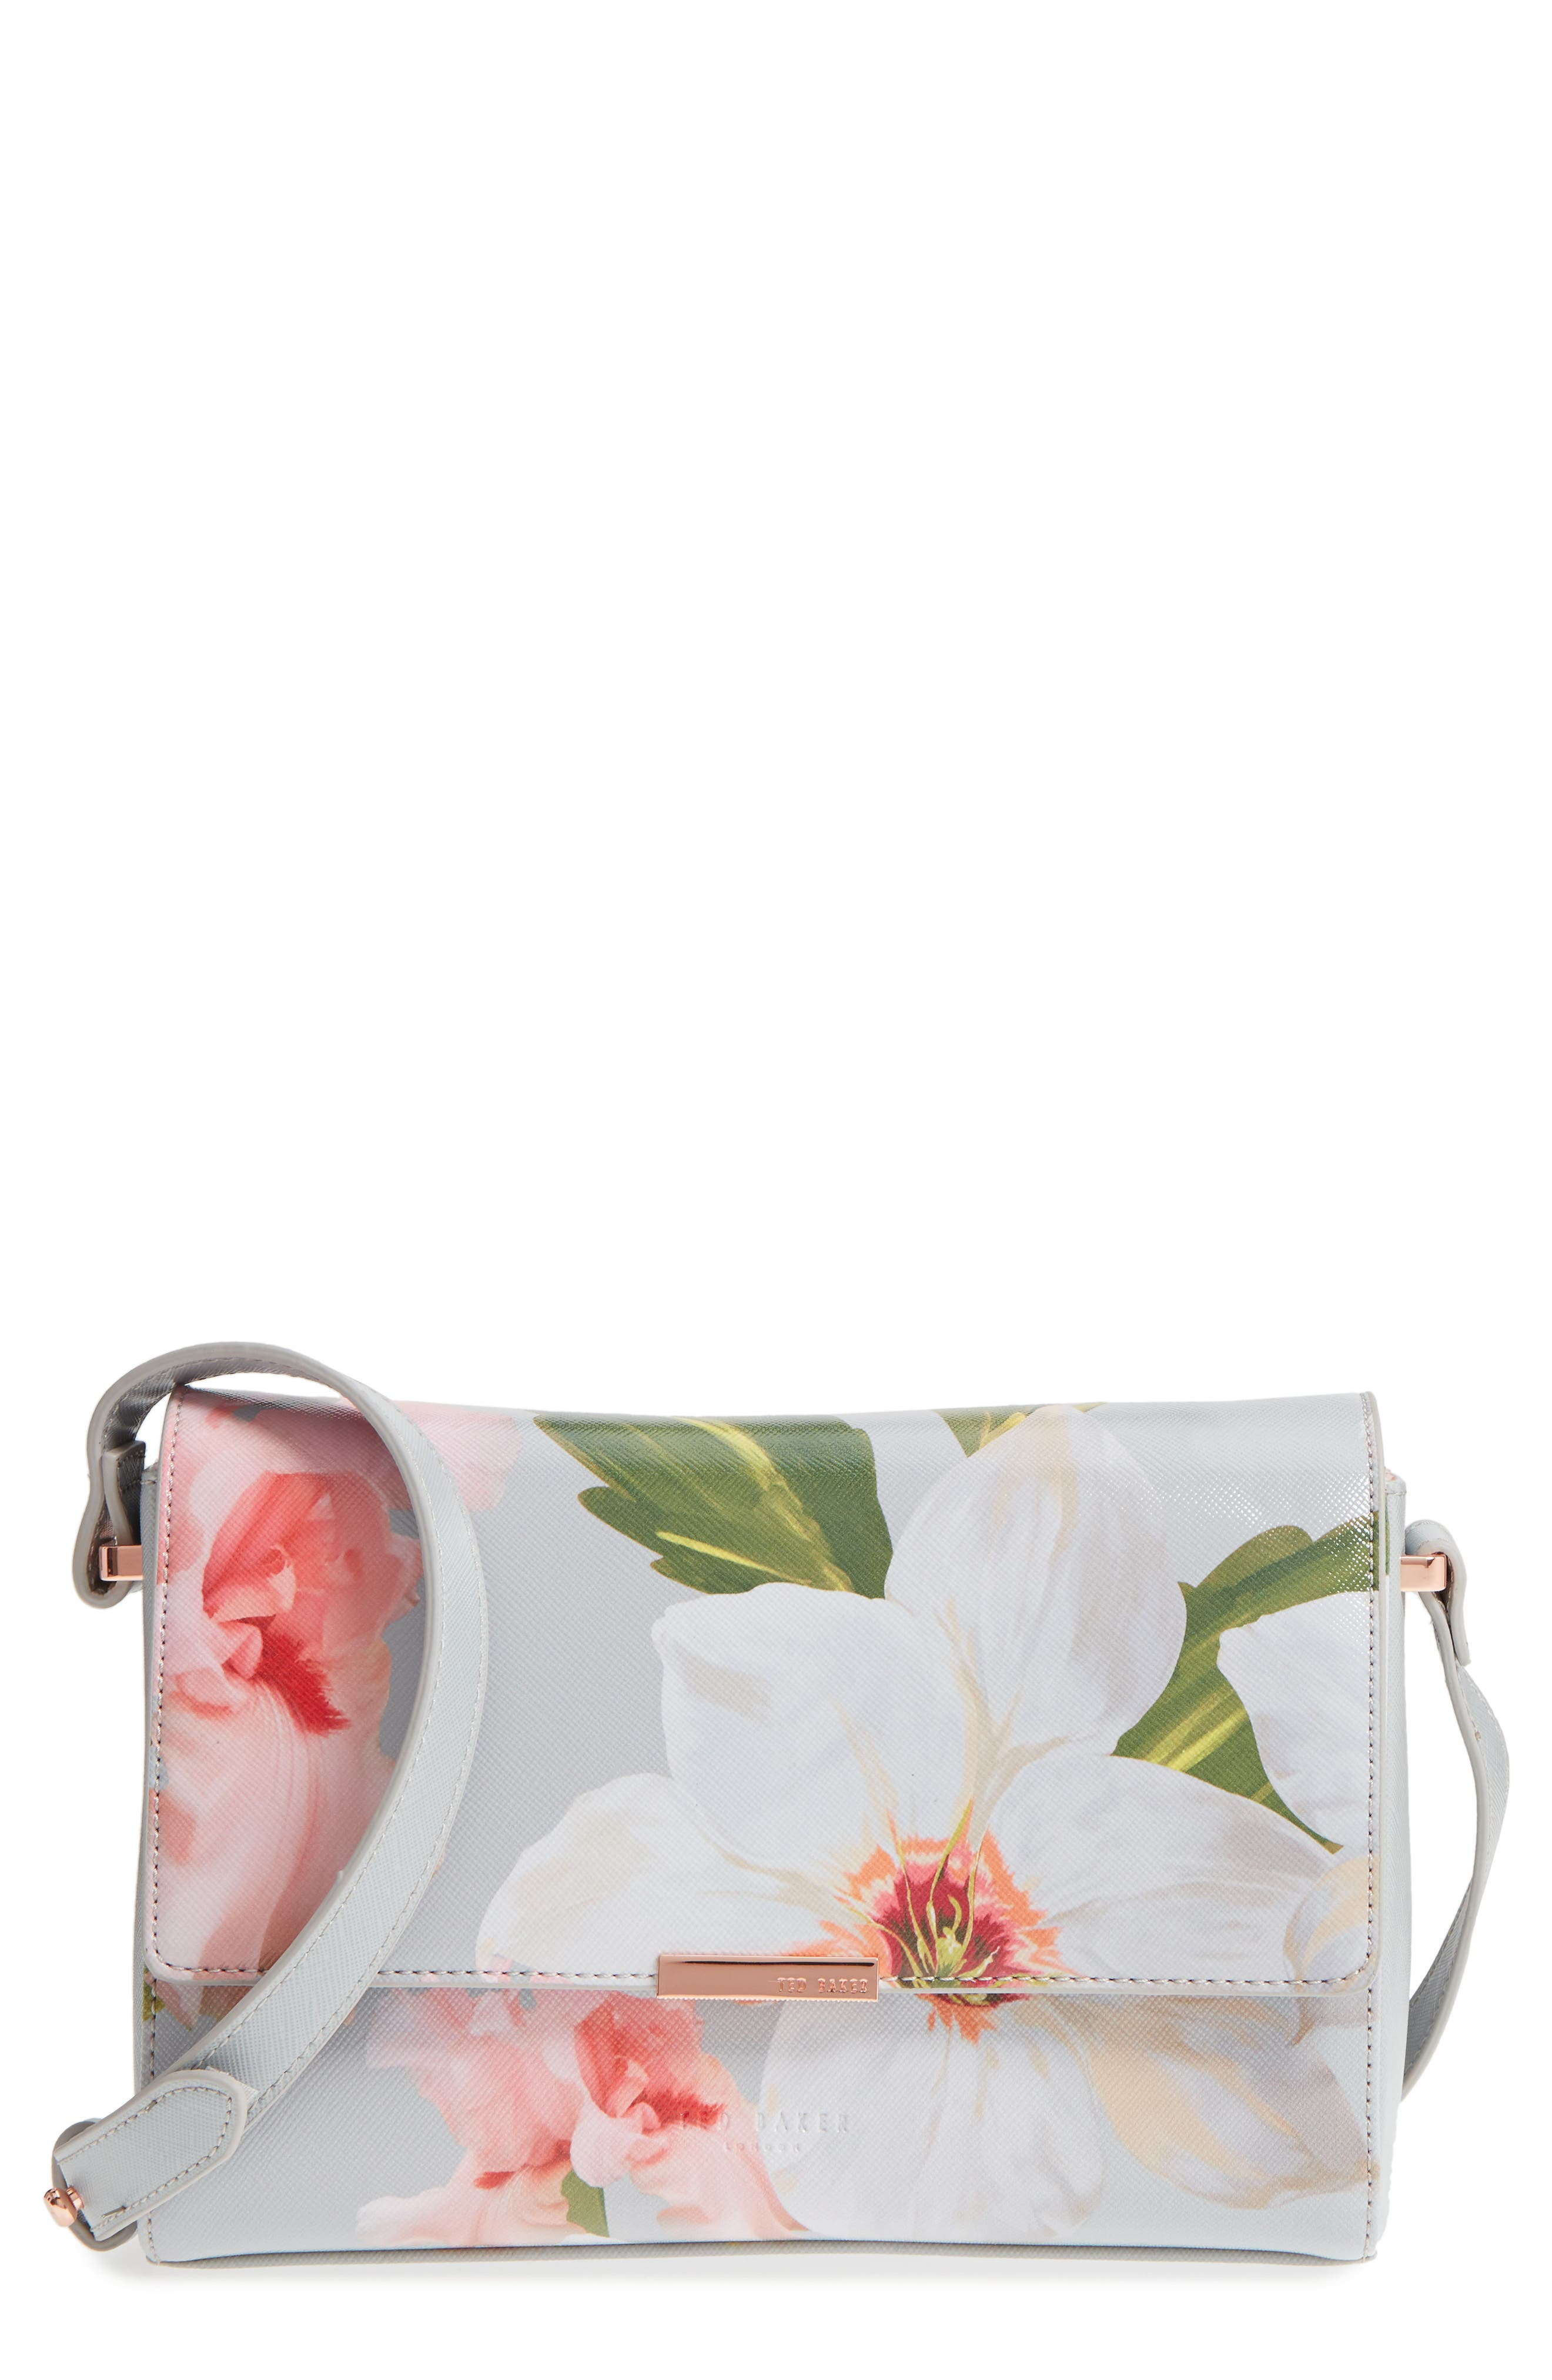 Prim Chatsworth Bloom Faux Leather Crossbody Bag,                             Main thumbnail 1, color,                             020